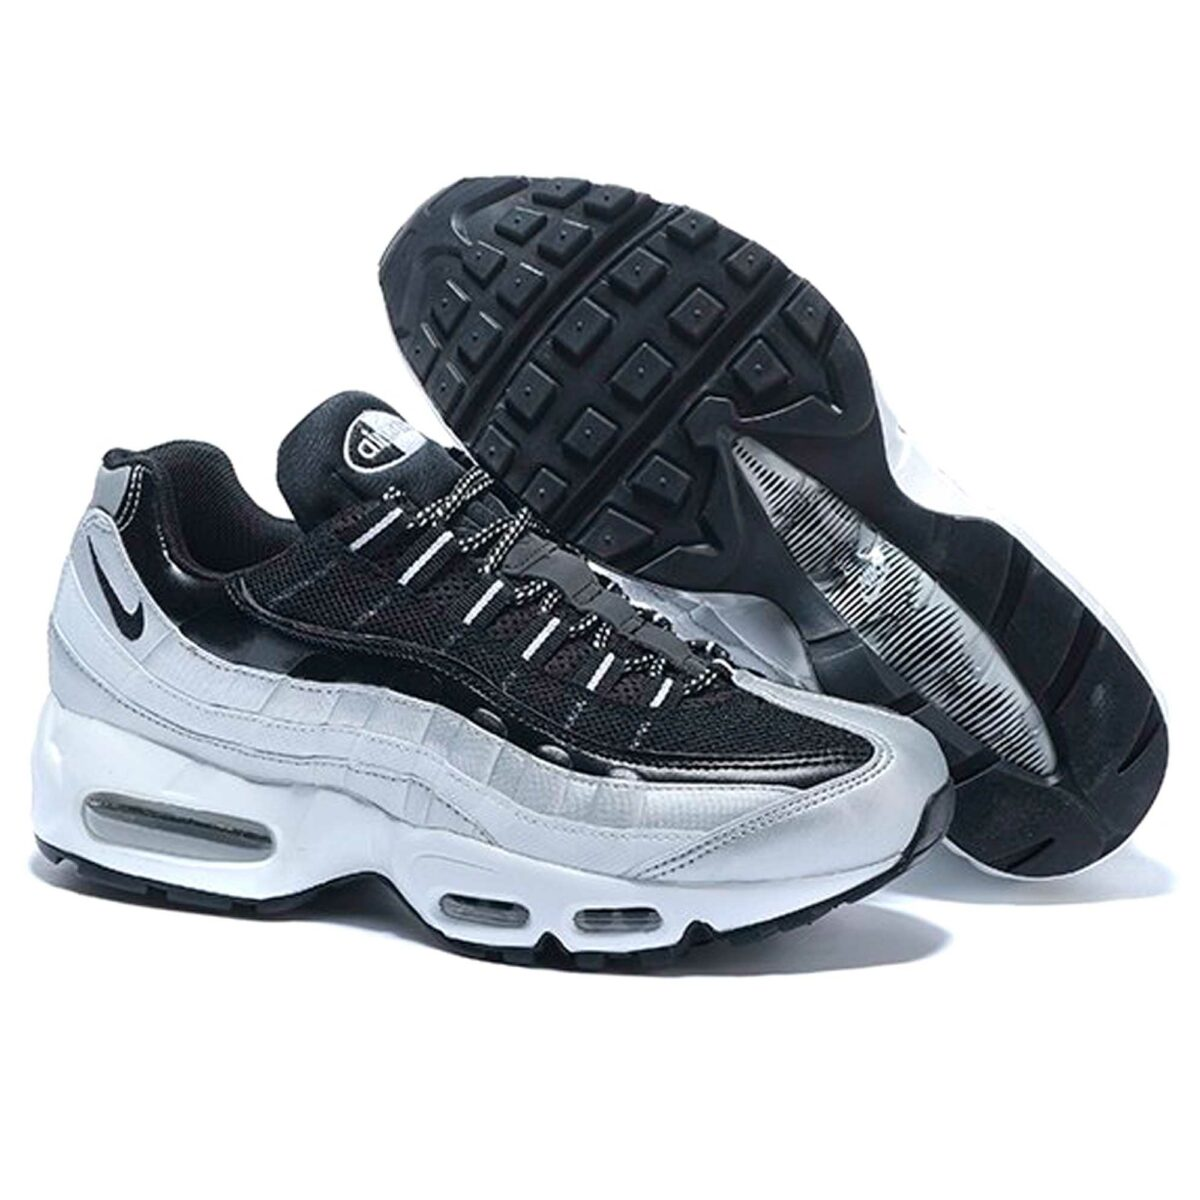 nike air max 95 black grey купить